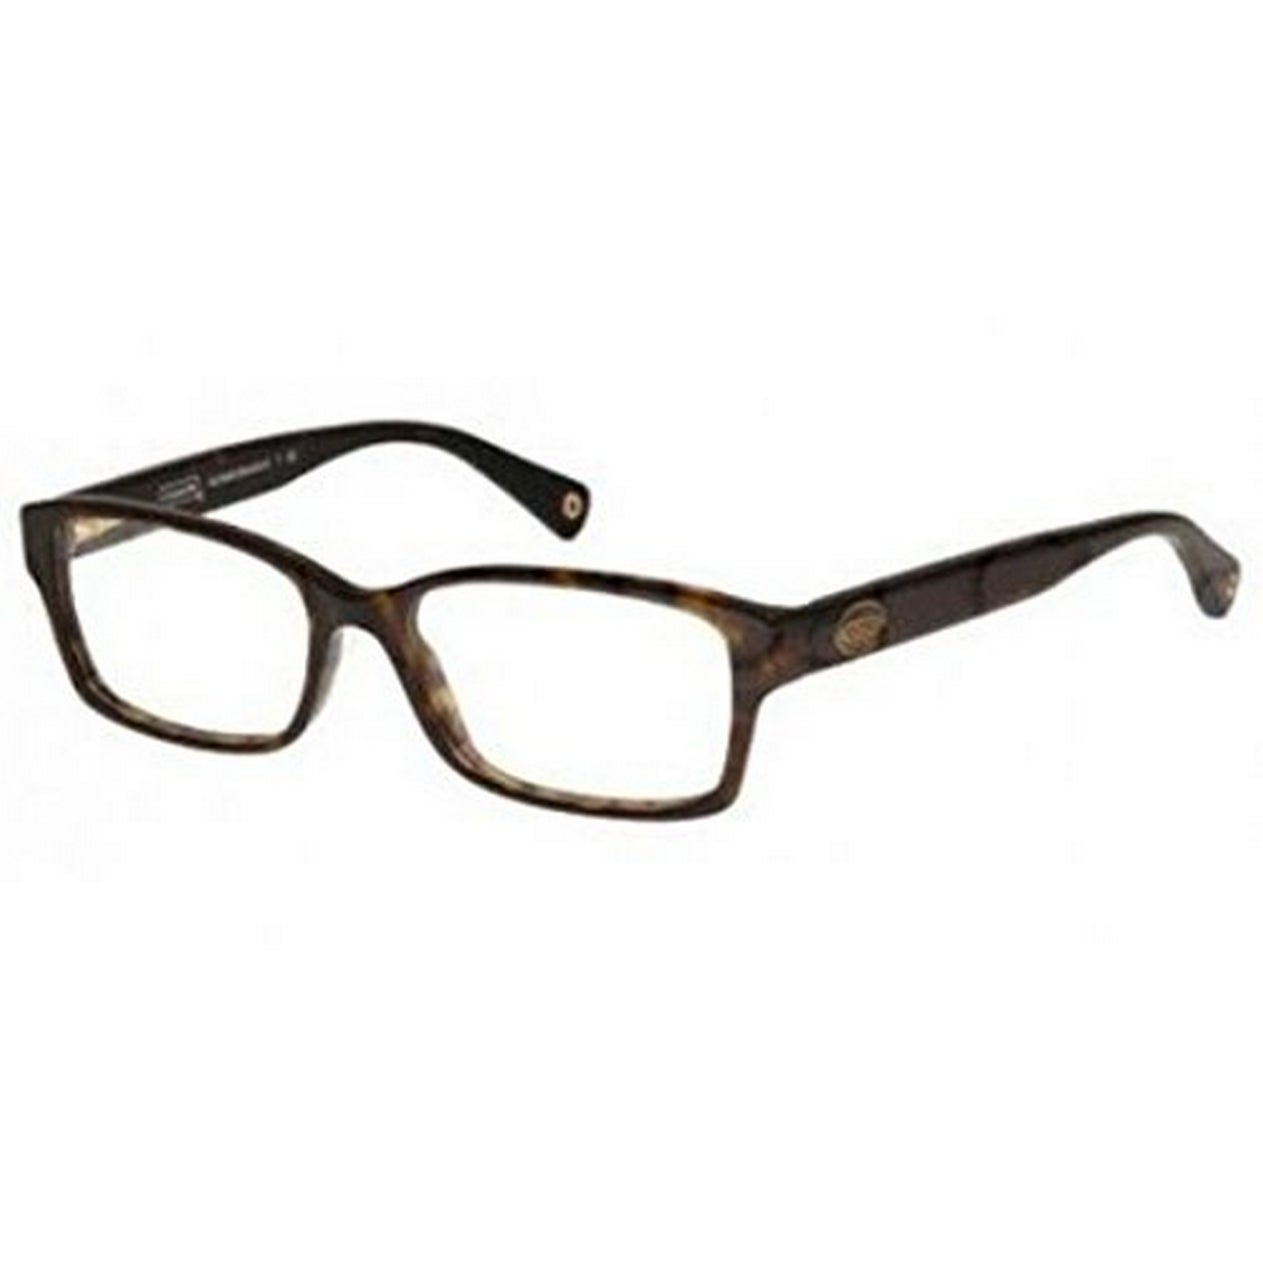 4fcb67e80a6 Shop Coach Women s HC6040 5001 52 Rectangle Plastic Havana Clear Eyeglasses  - Free Shipping Today - Overstock.com - 14778772